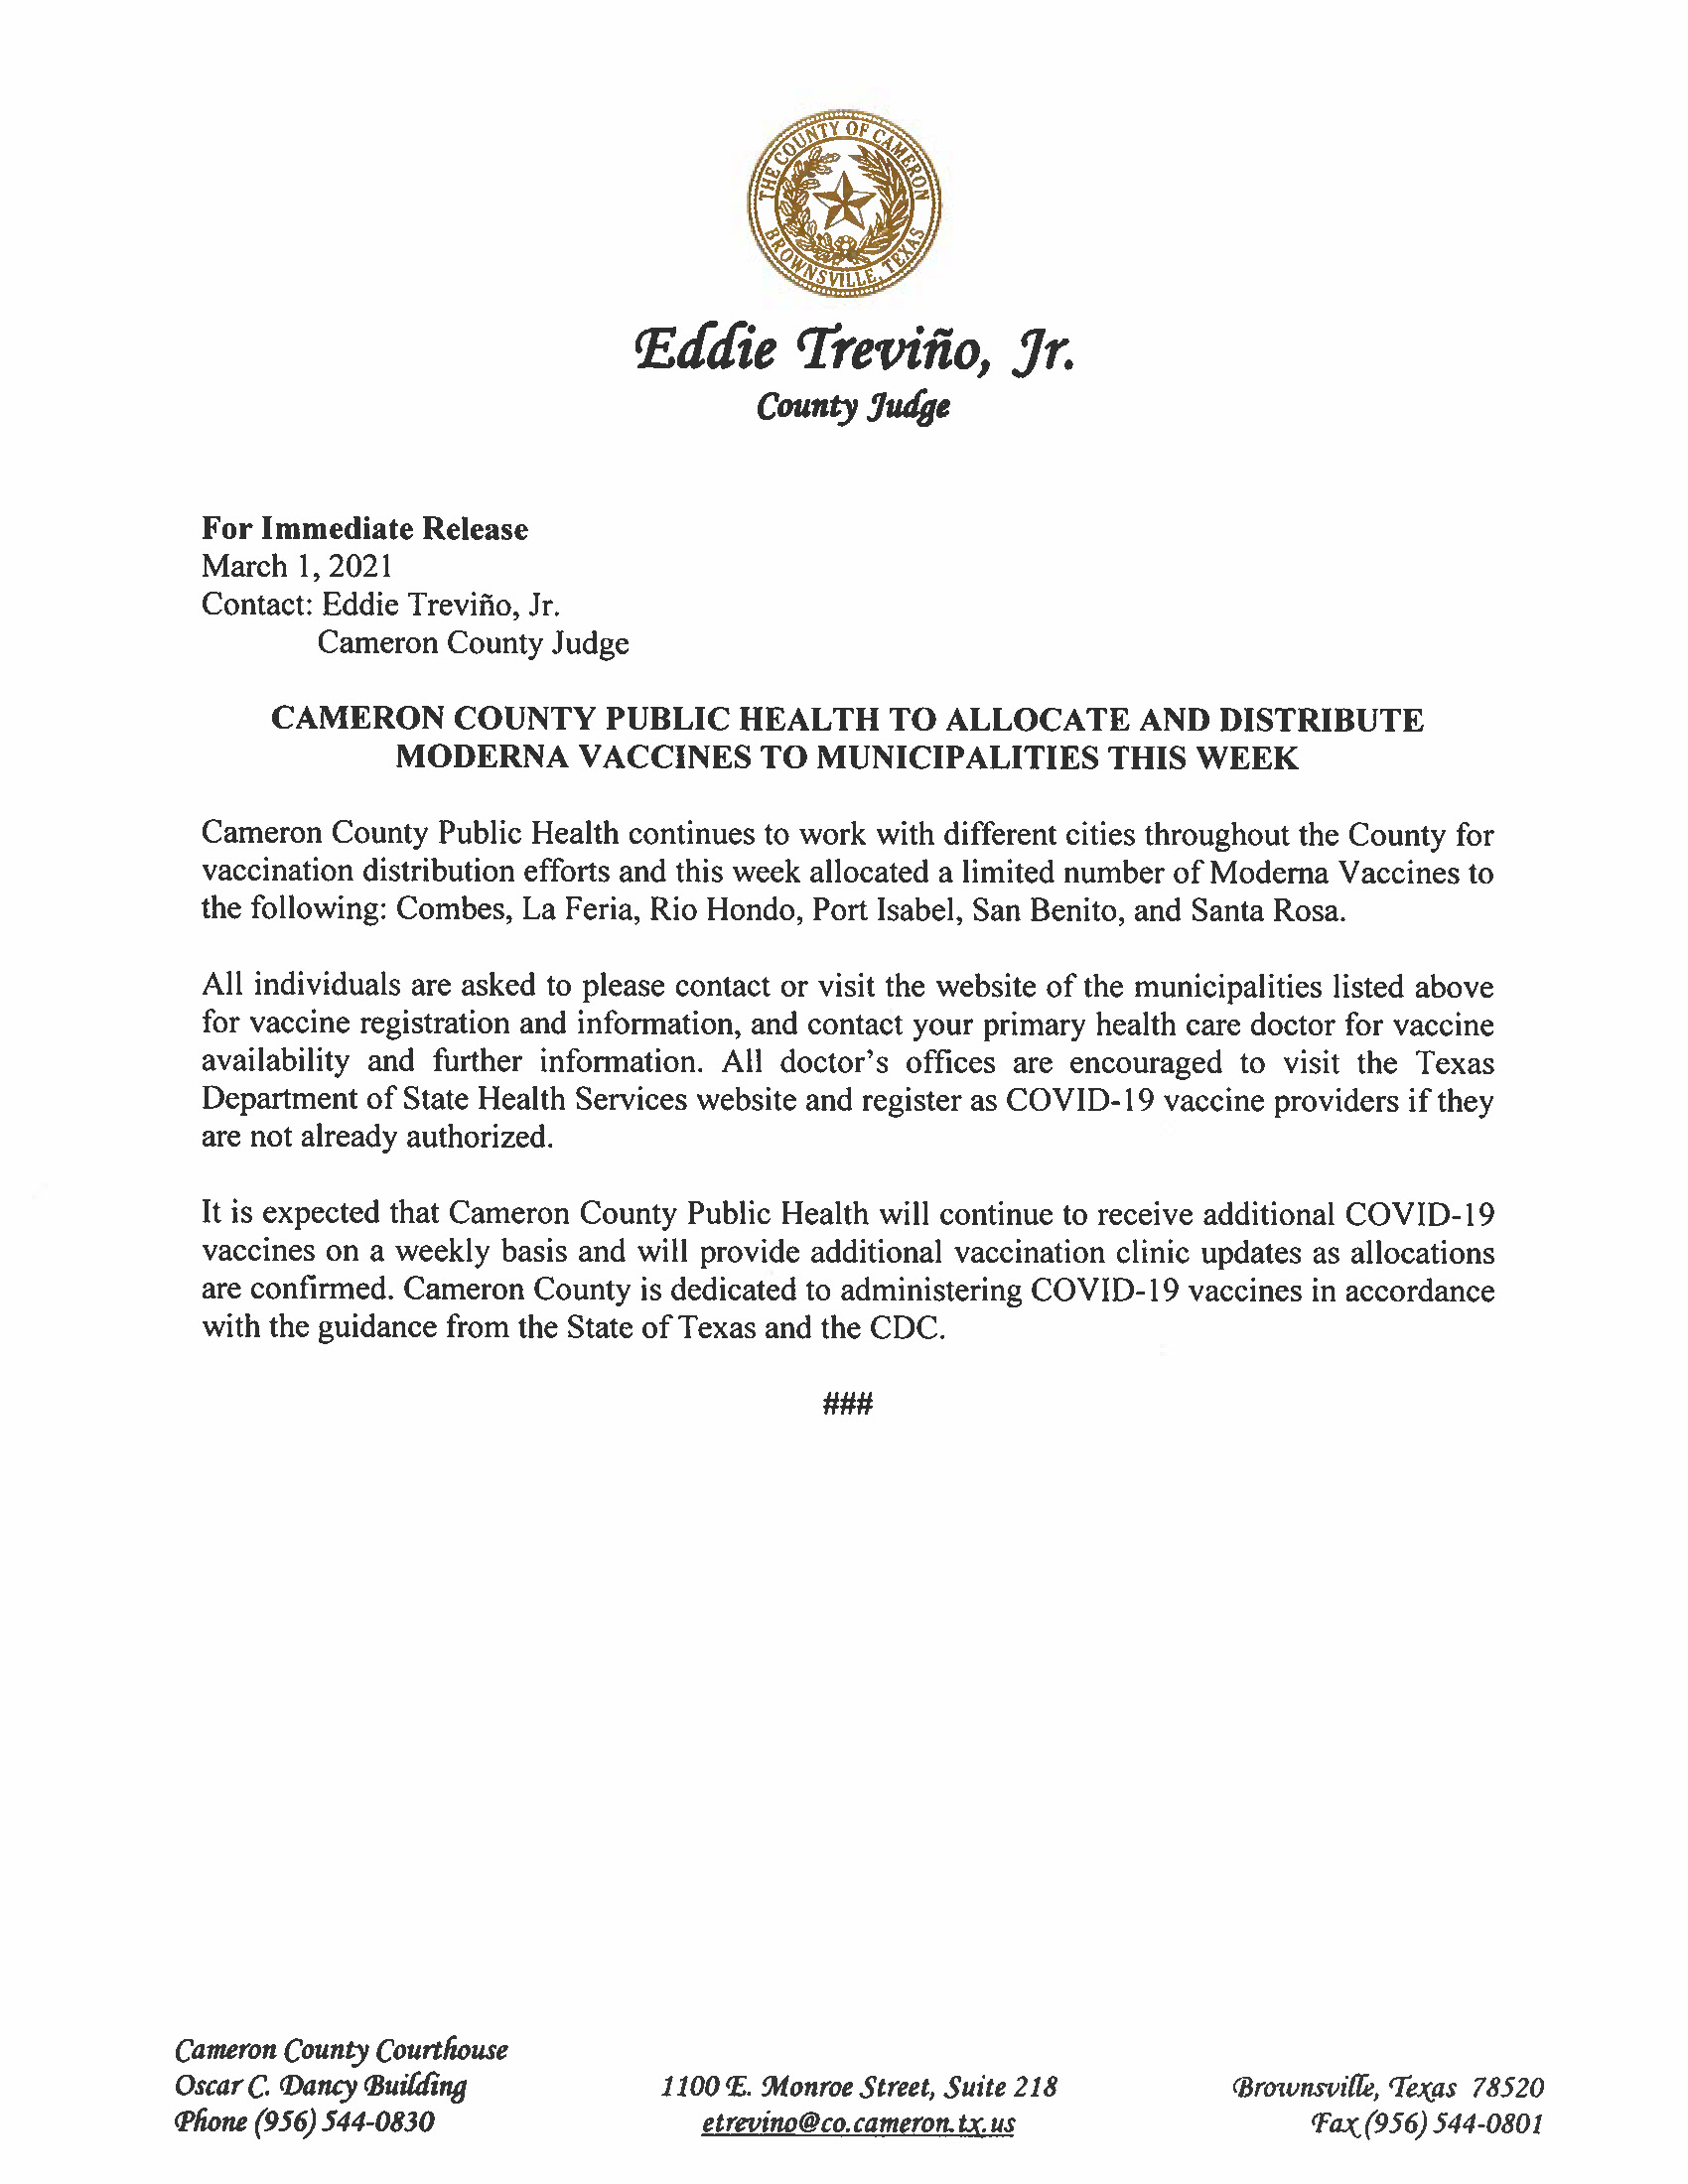 3.1.21 Cameron County Public Health To Allocate And Distribute Moderna Vaccines To Municipalities This Week